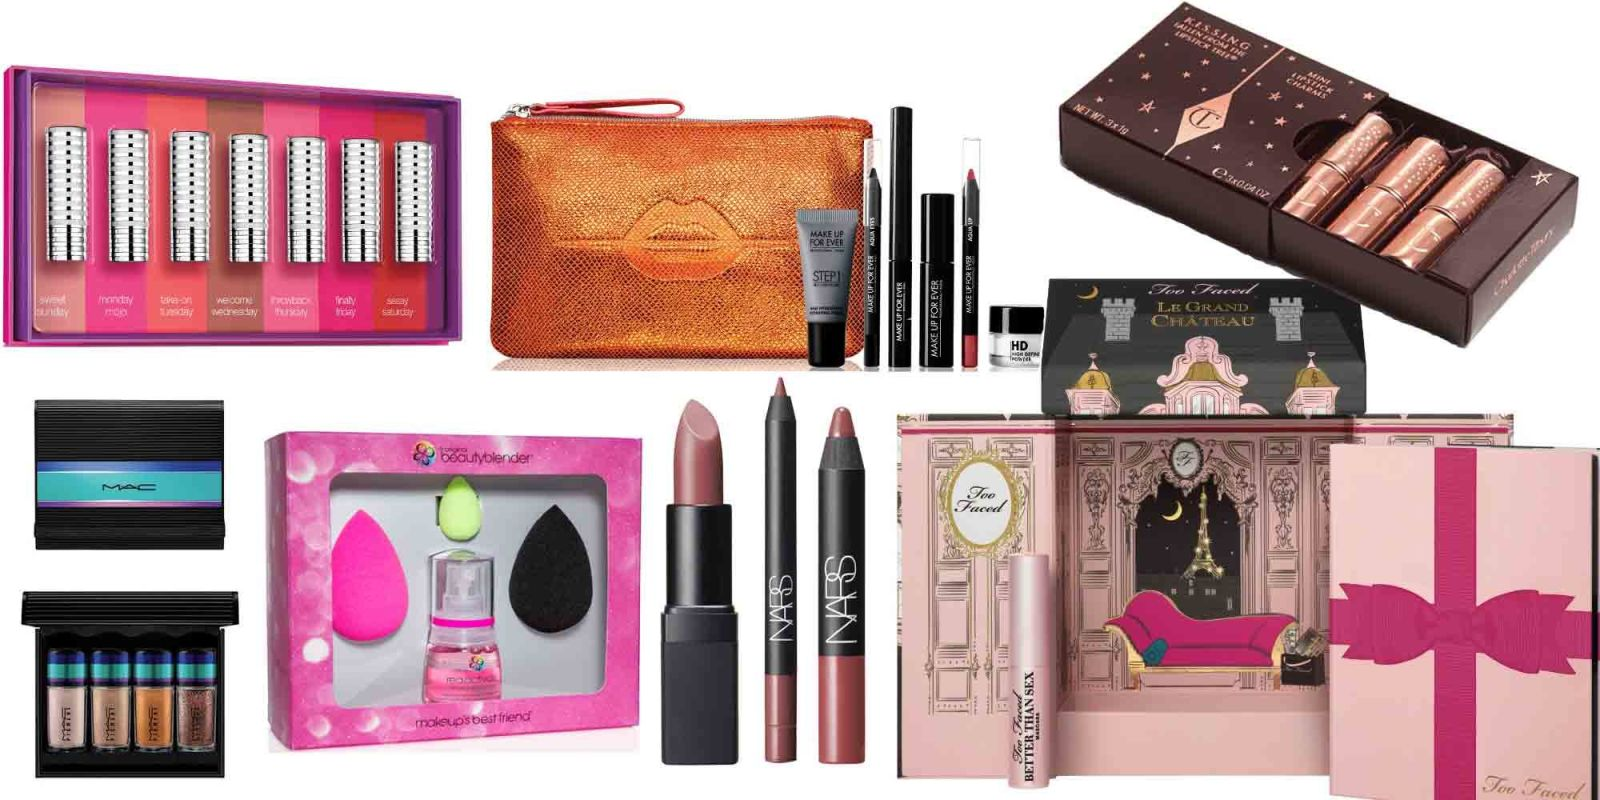 The ultimate makeup gift sets for Christmas 2015